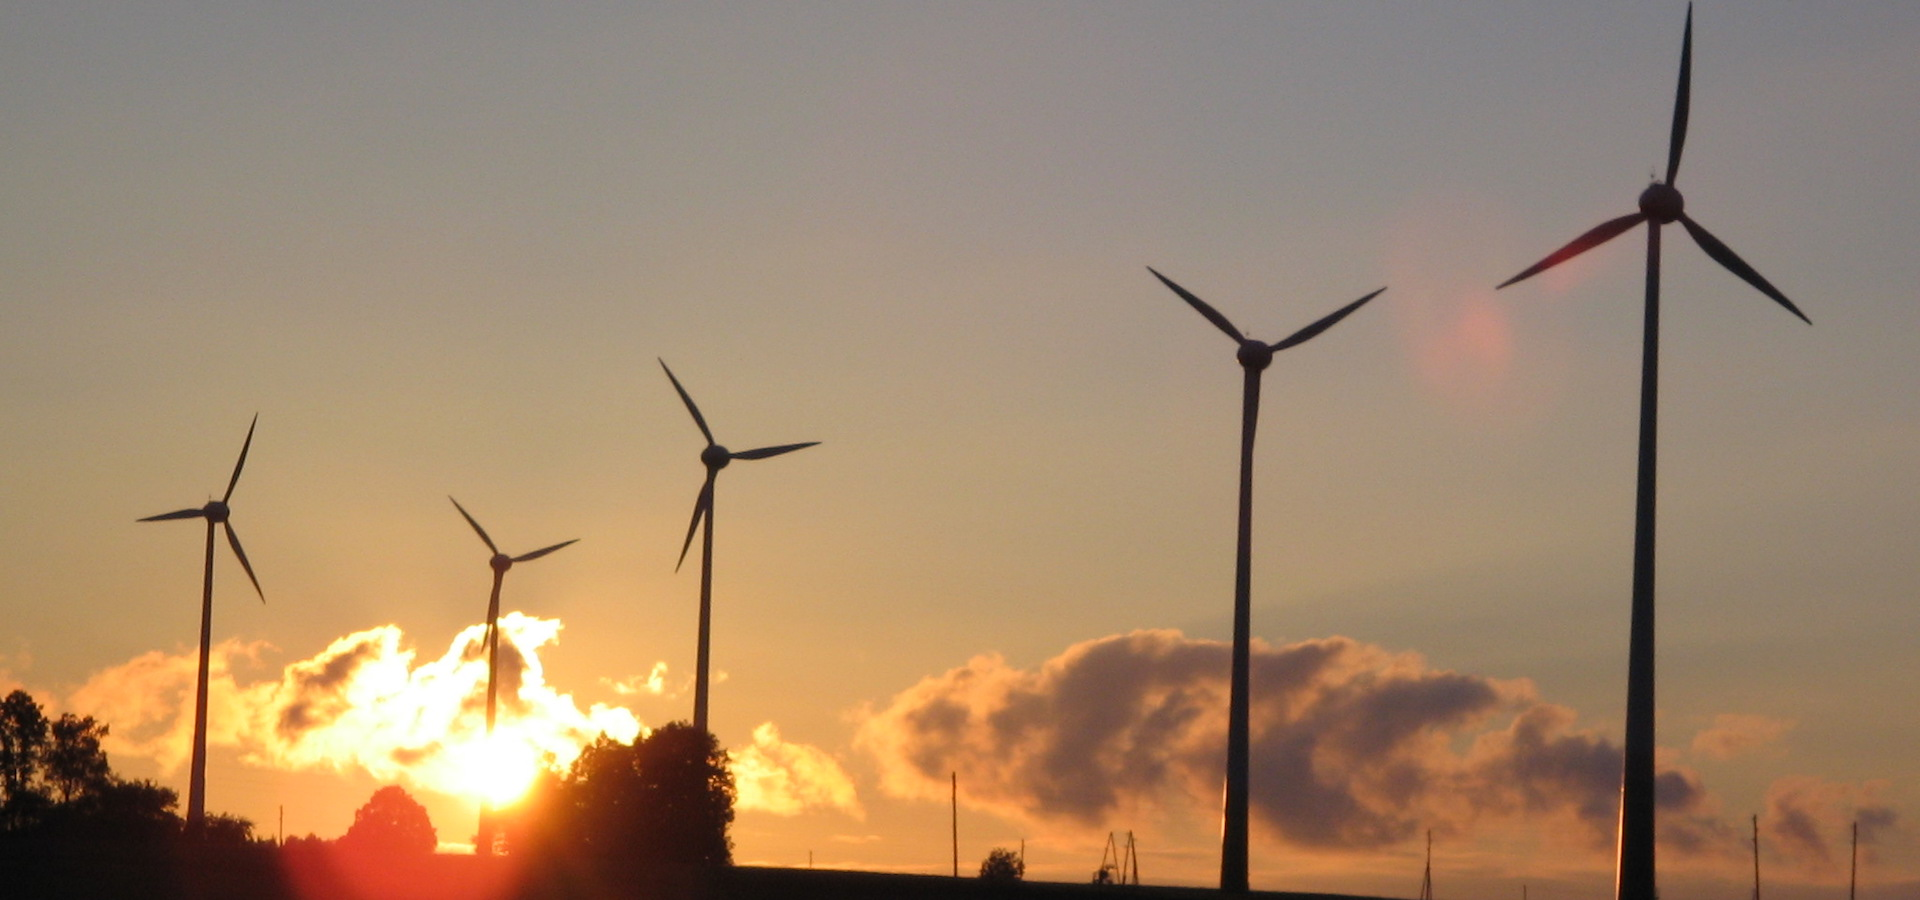 What's going to happen to renewables? (Photo by, edited, CC BY-SA 3.0)